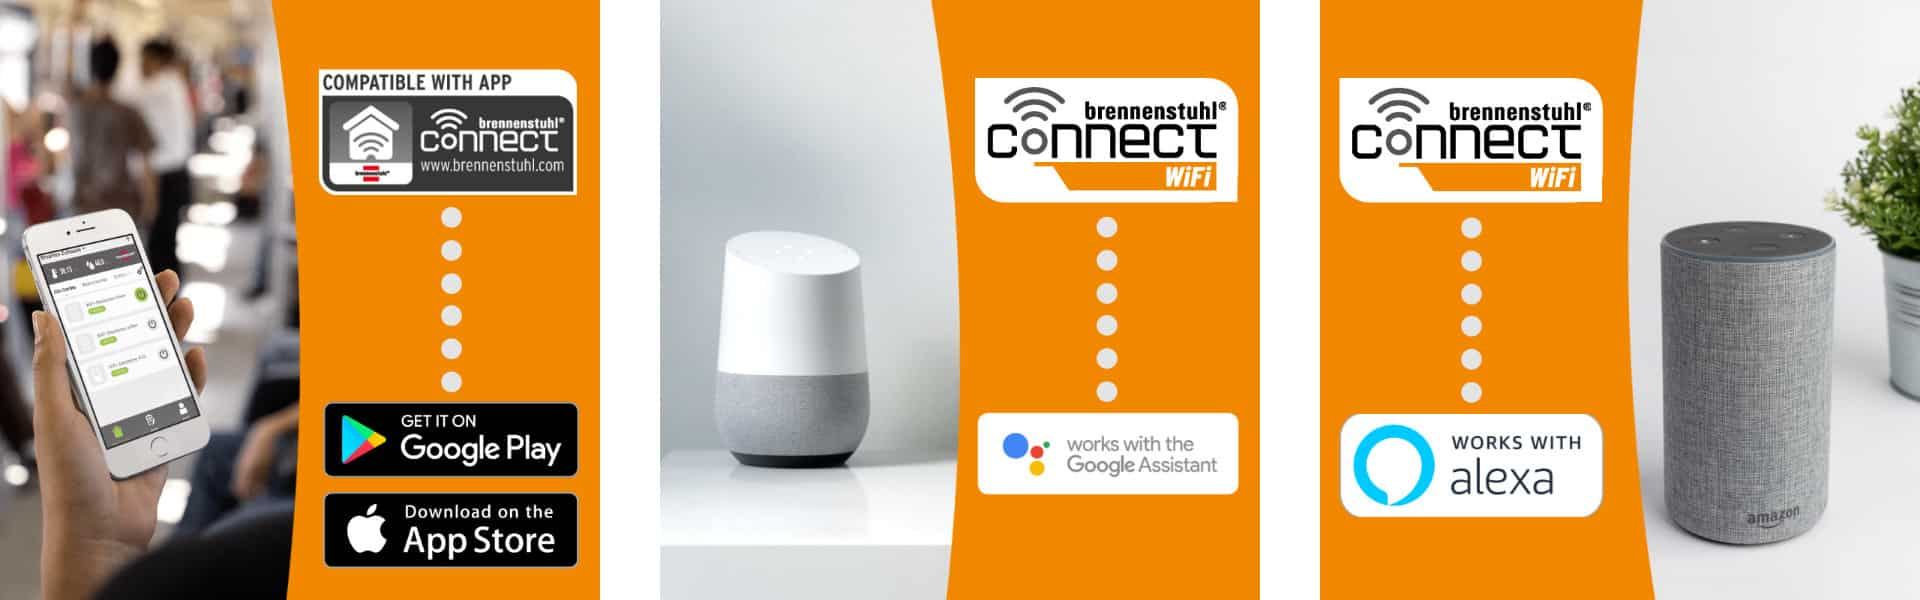 brennenstuhl Connect WiFi Steckdosen kompatibel mit Google Assistant und Amazon Alexa